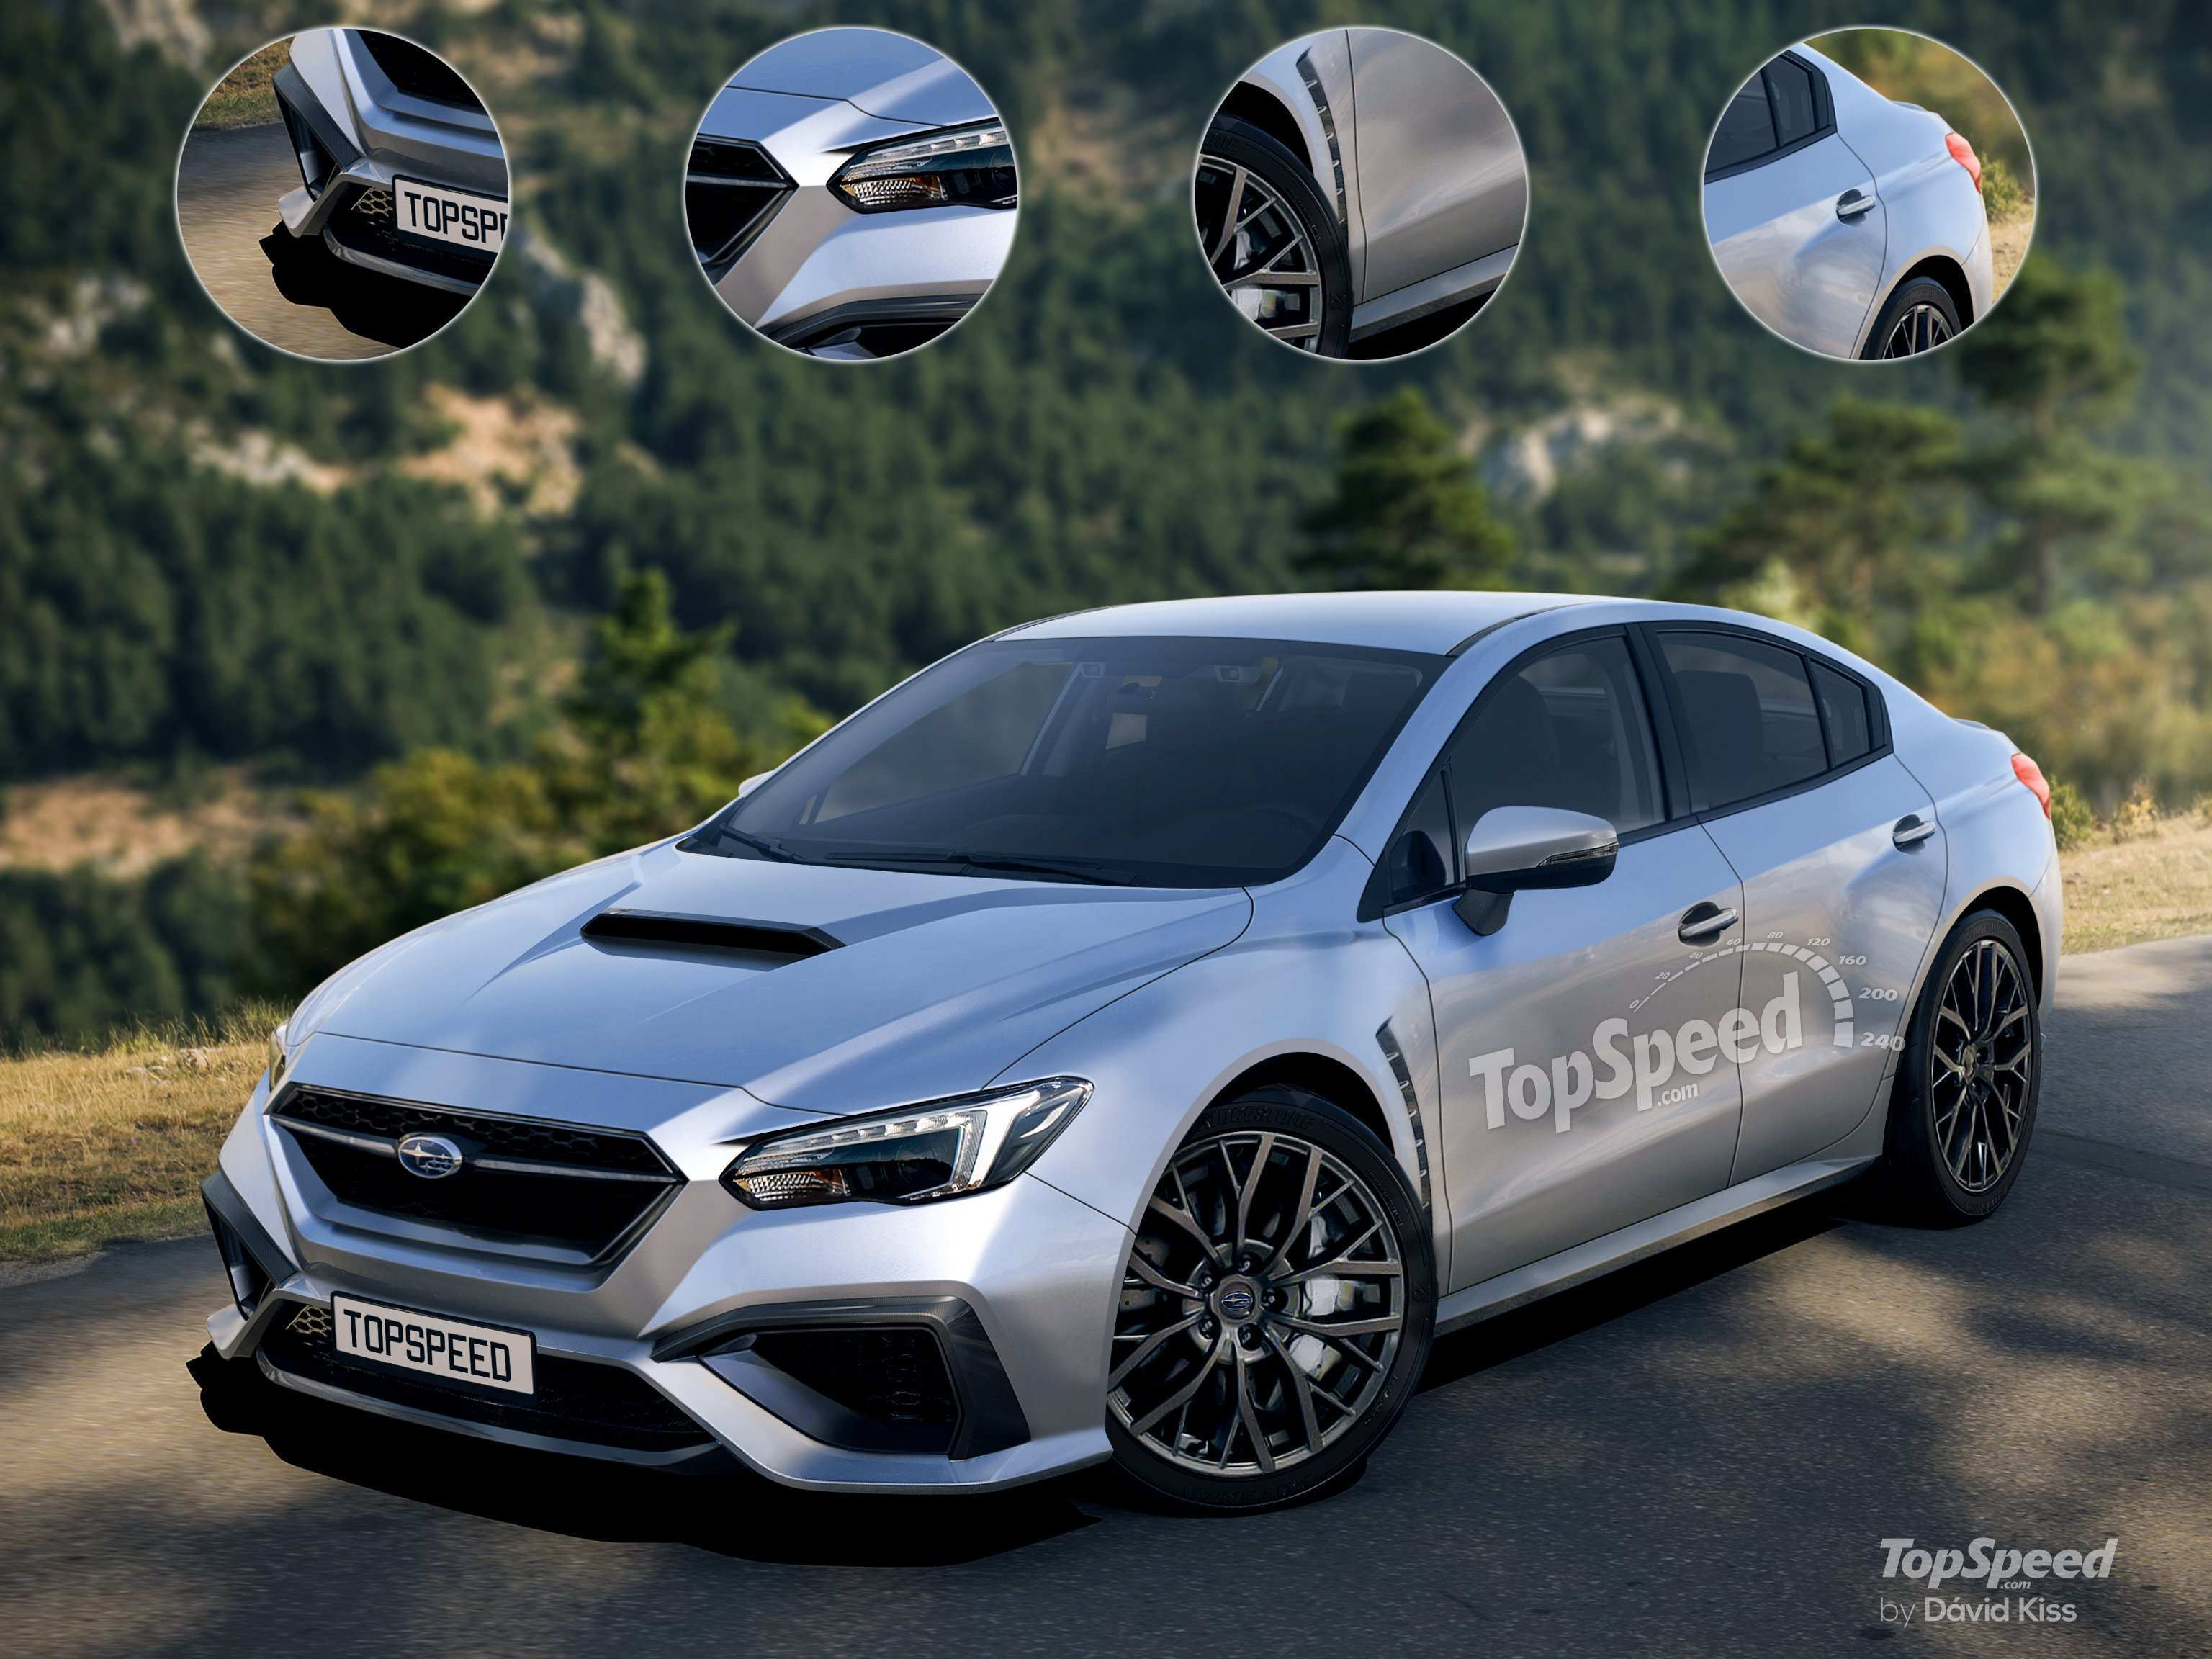 24 A Subaru Wrx 2020 Model Images